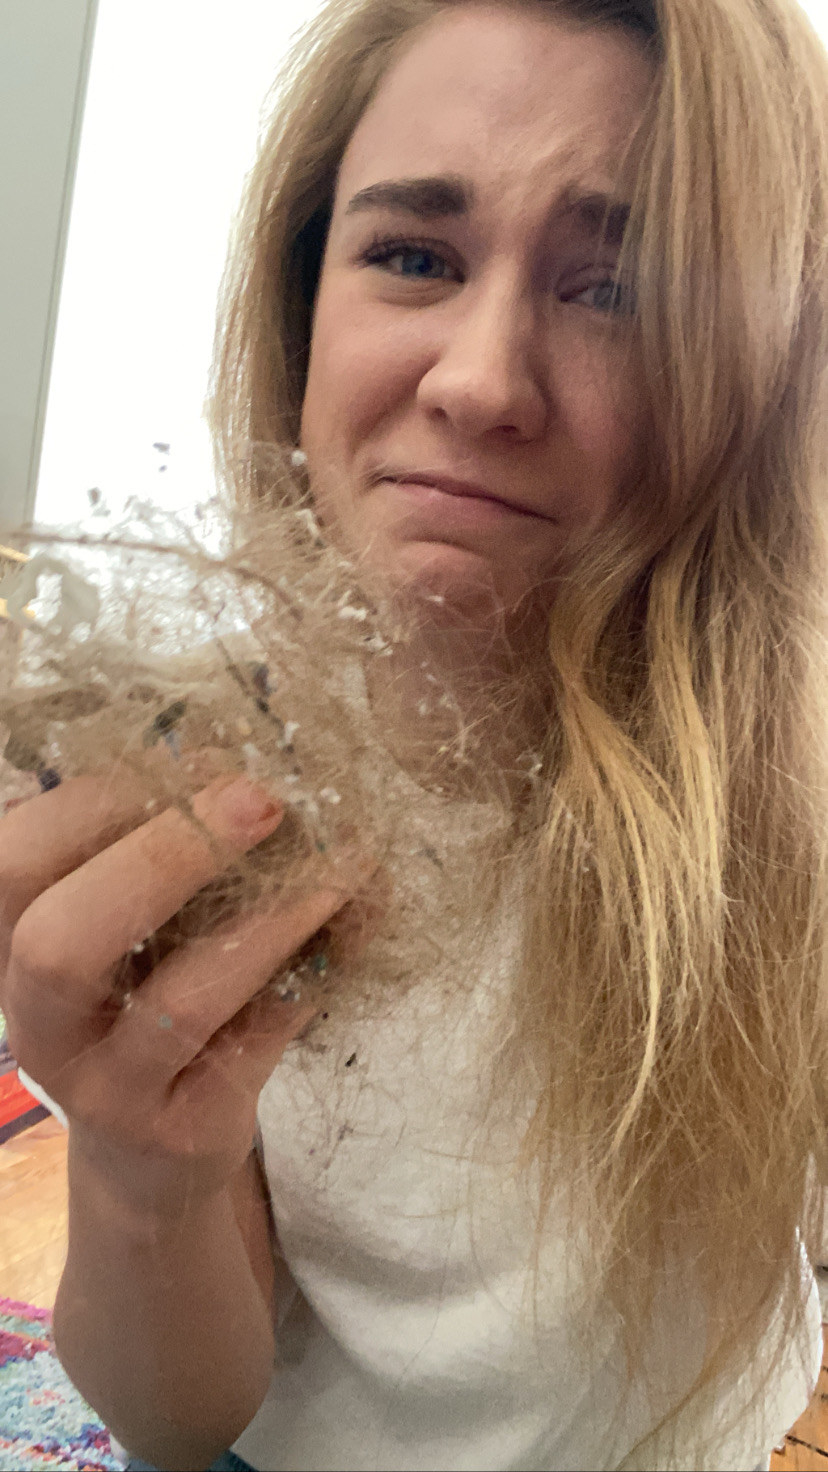 A BuzzFeed editor cringing while holding a gob of their own hair from the floor